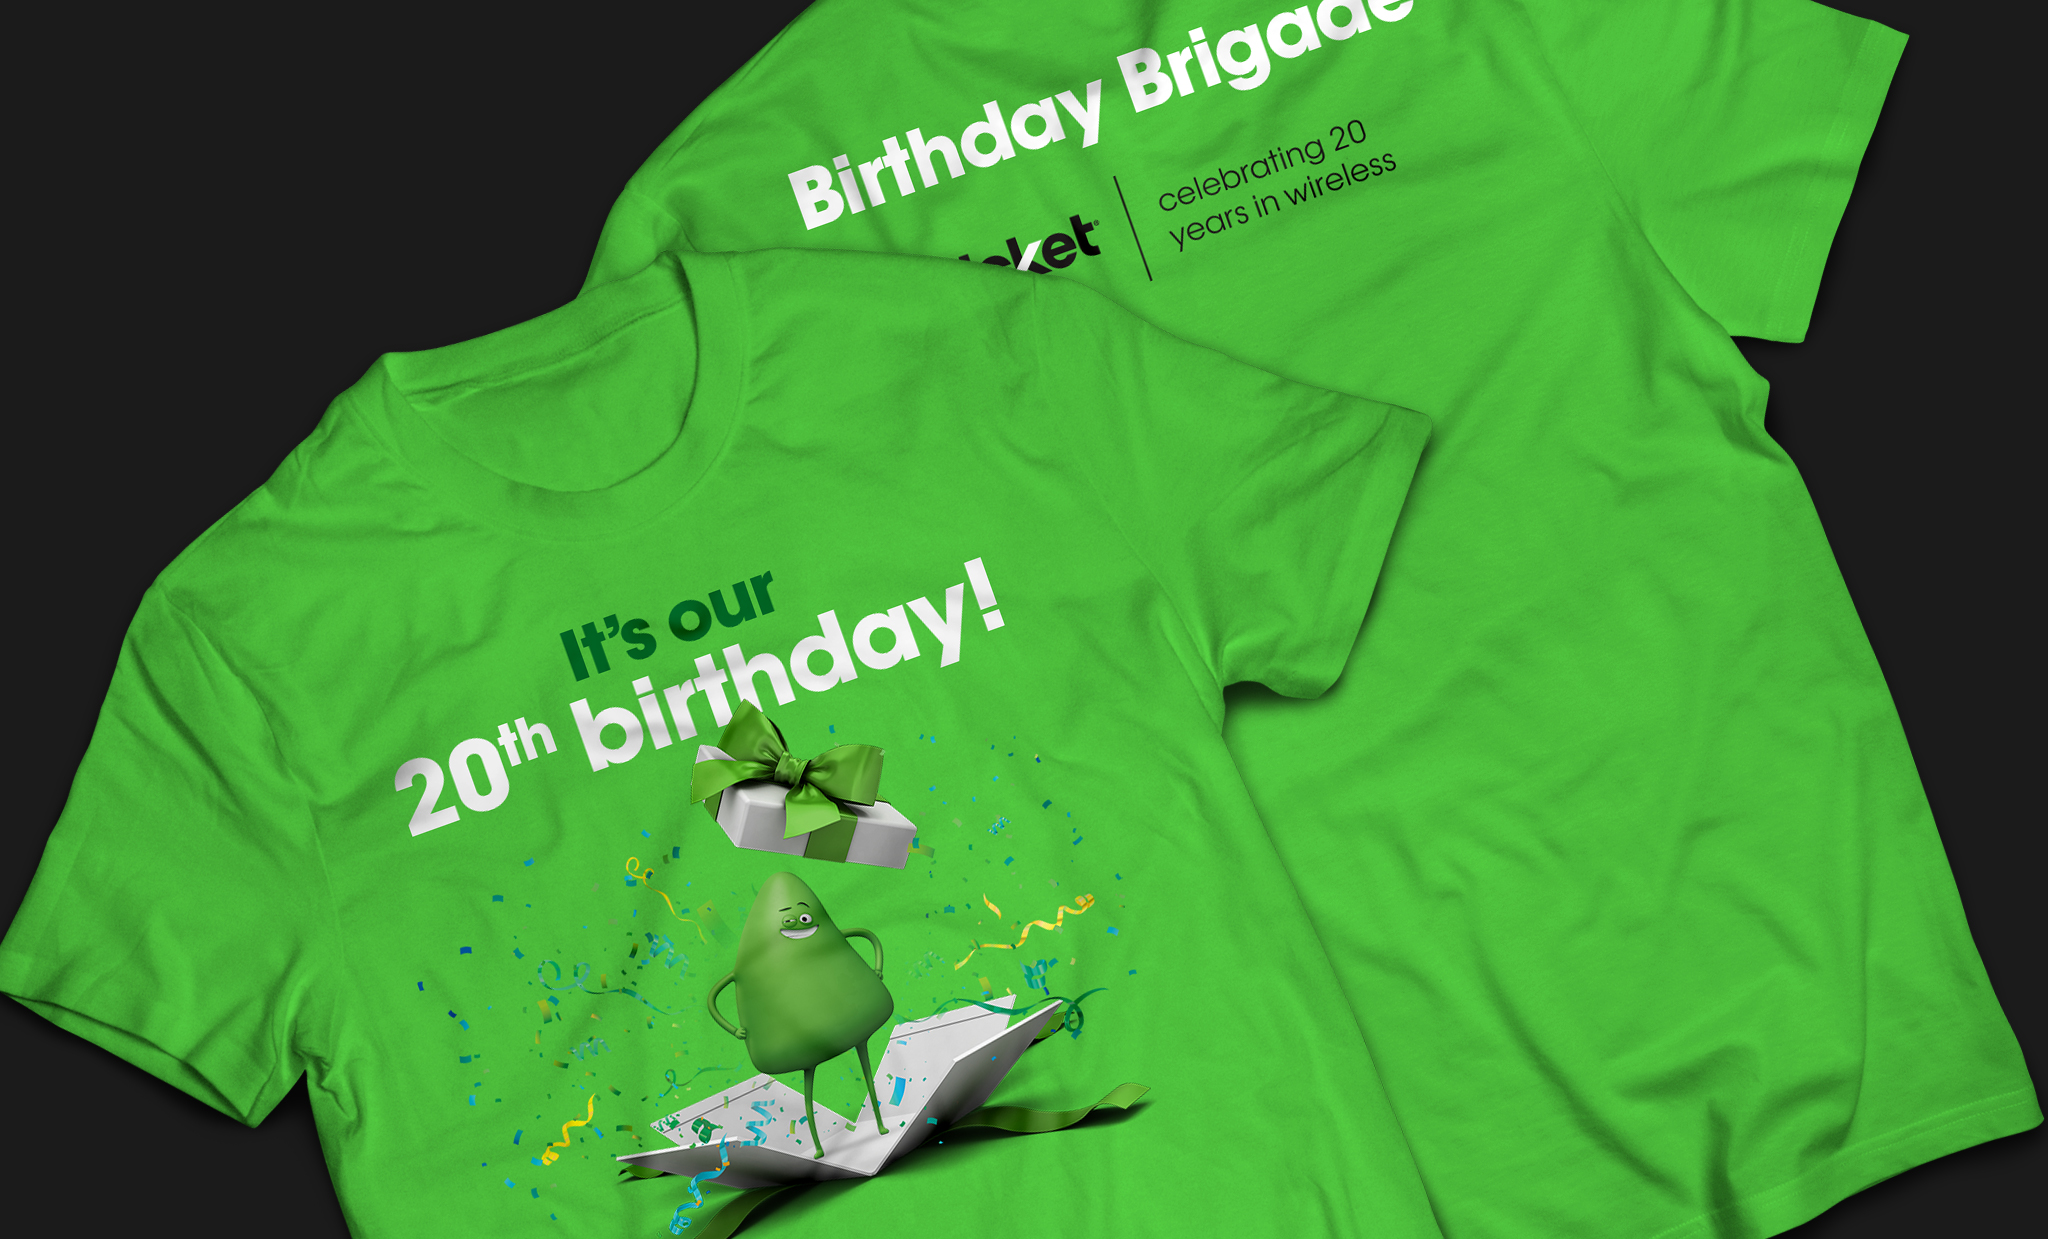 cricket_bday_tshirt